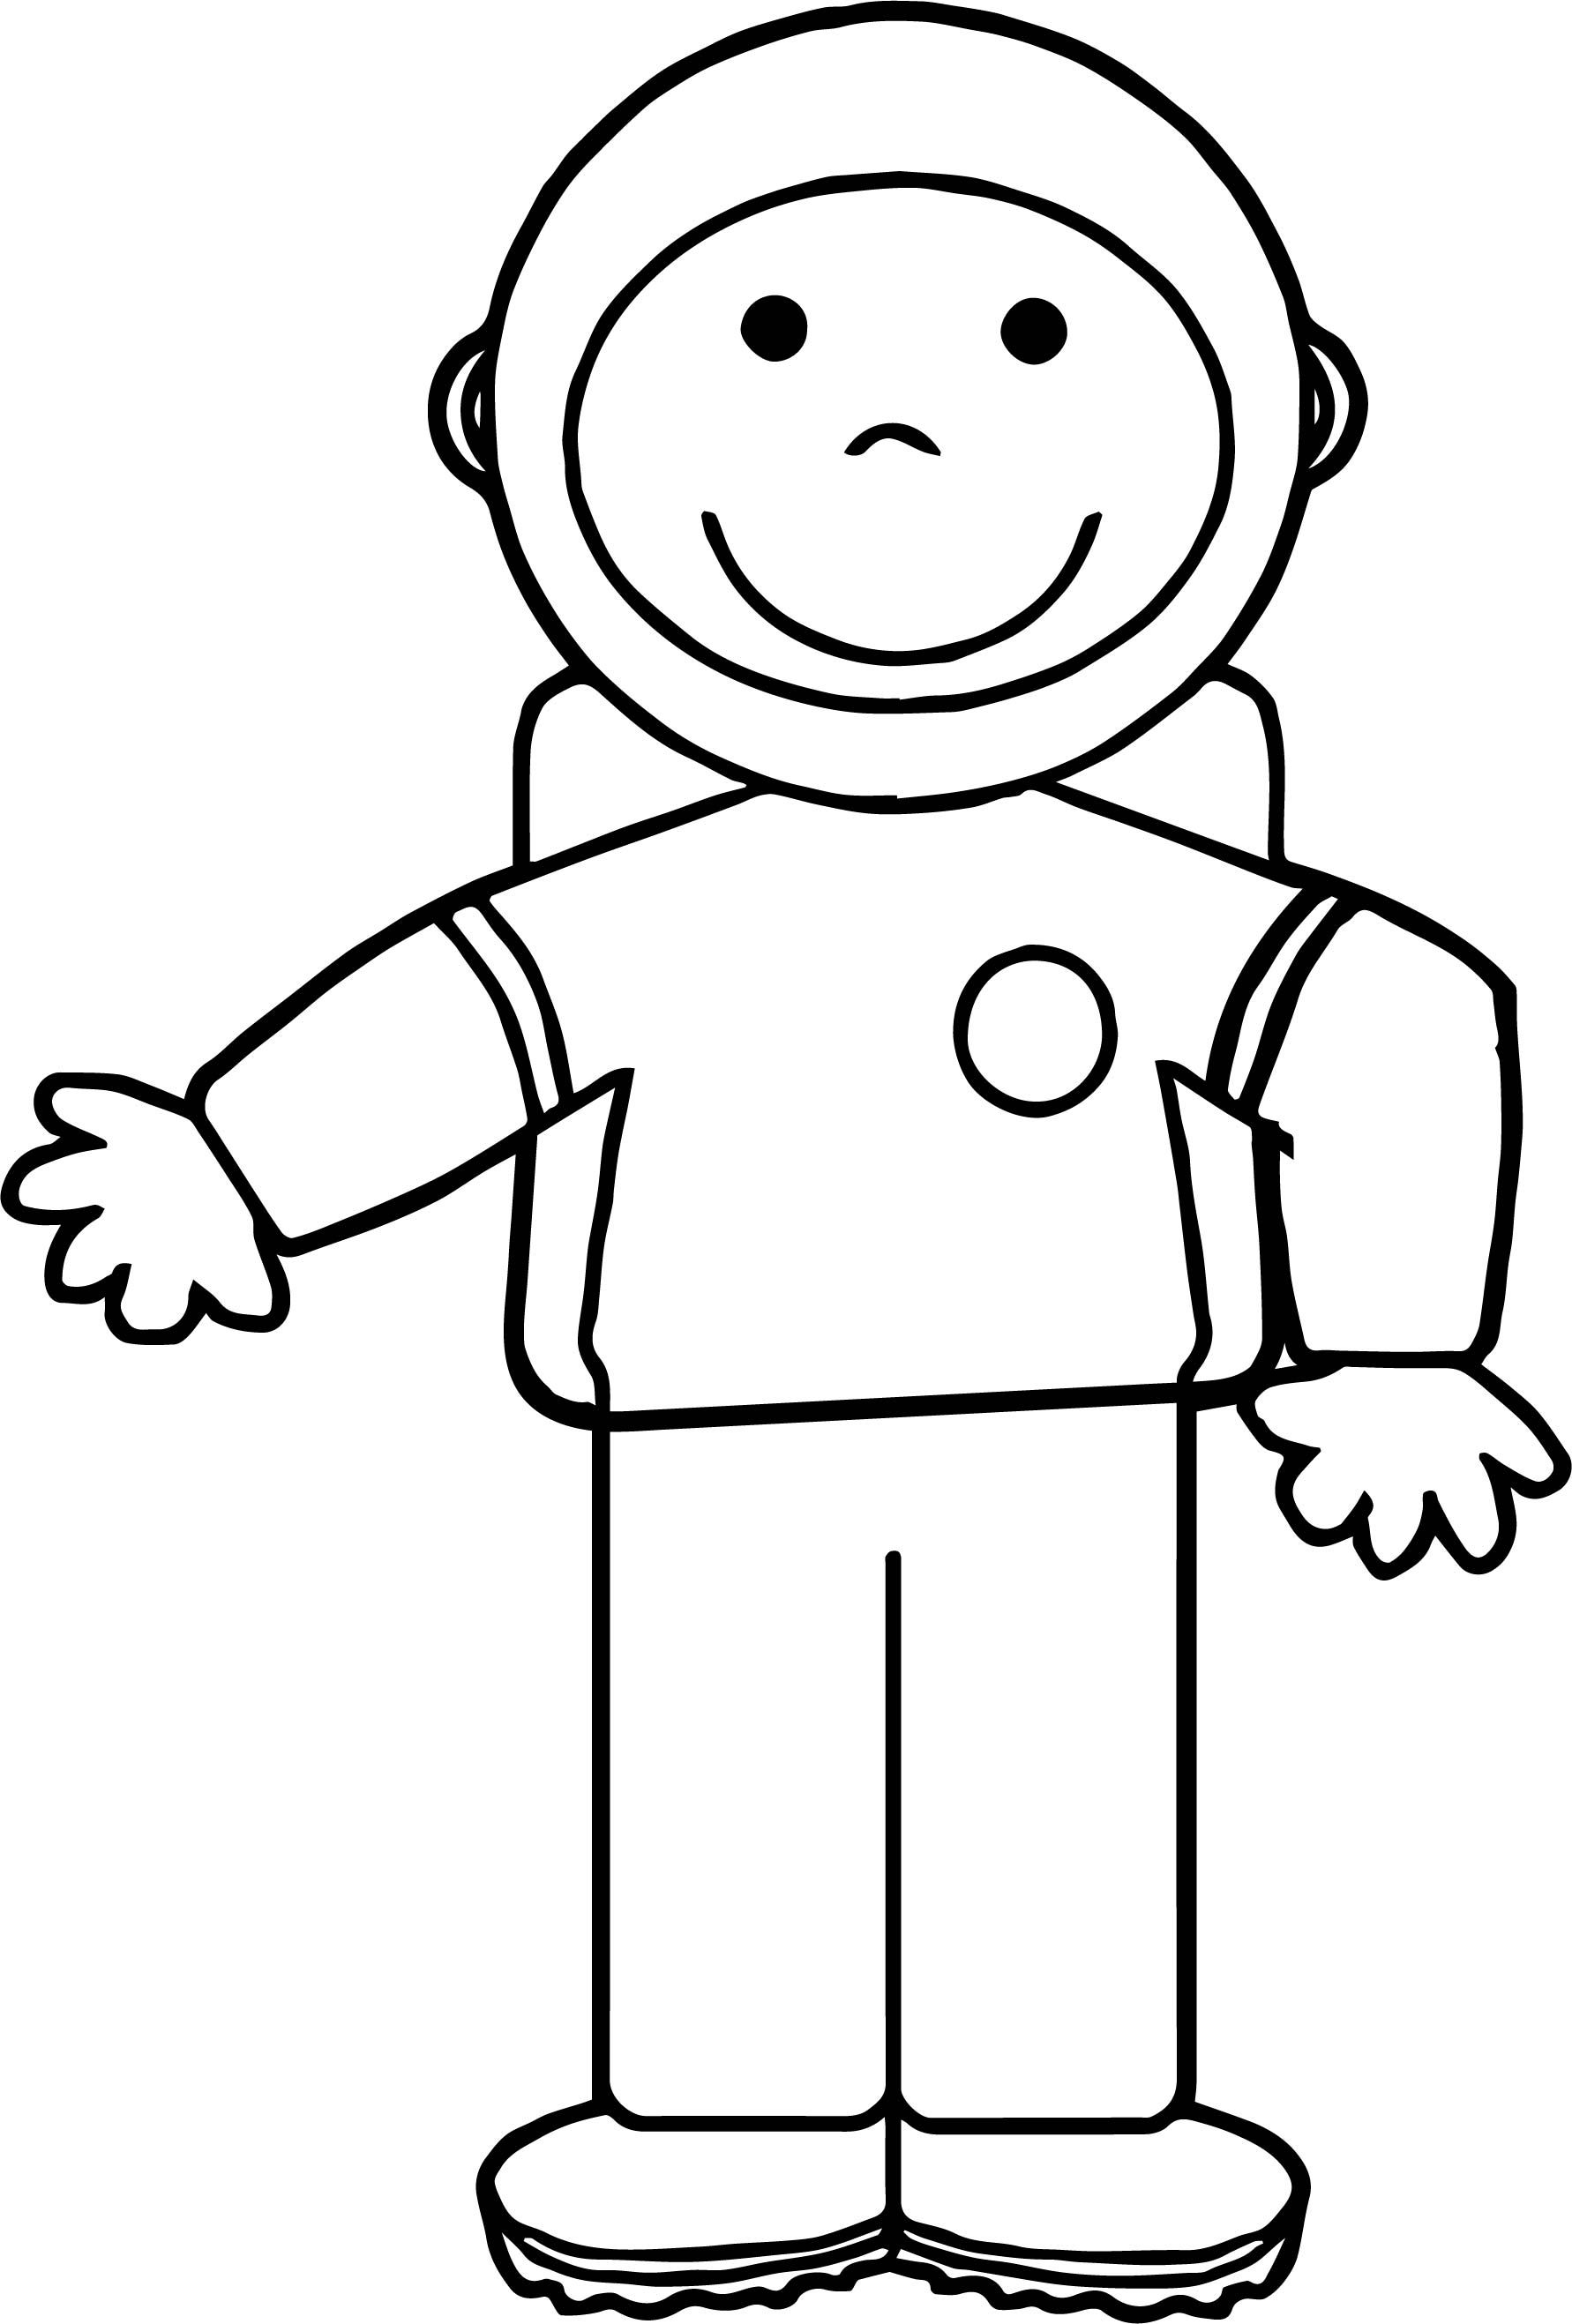 Kid Astronaut Coloring Page | Astronauts